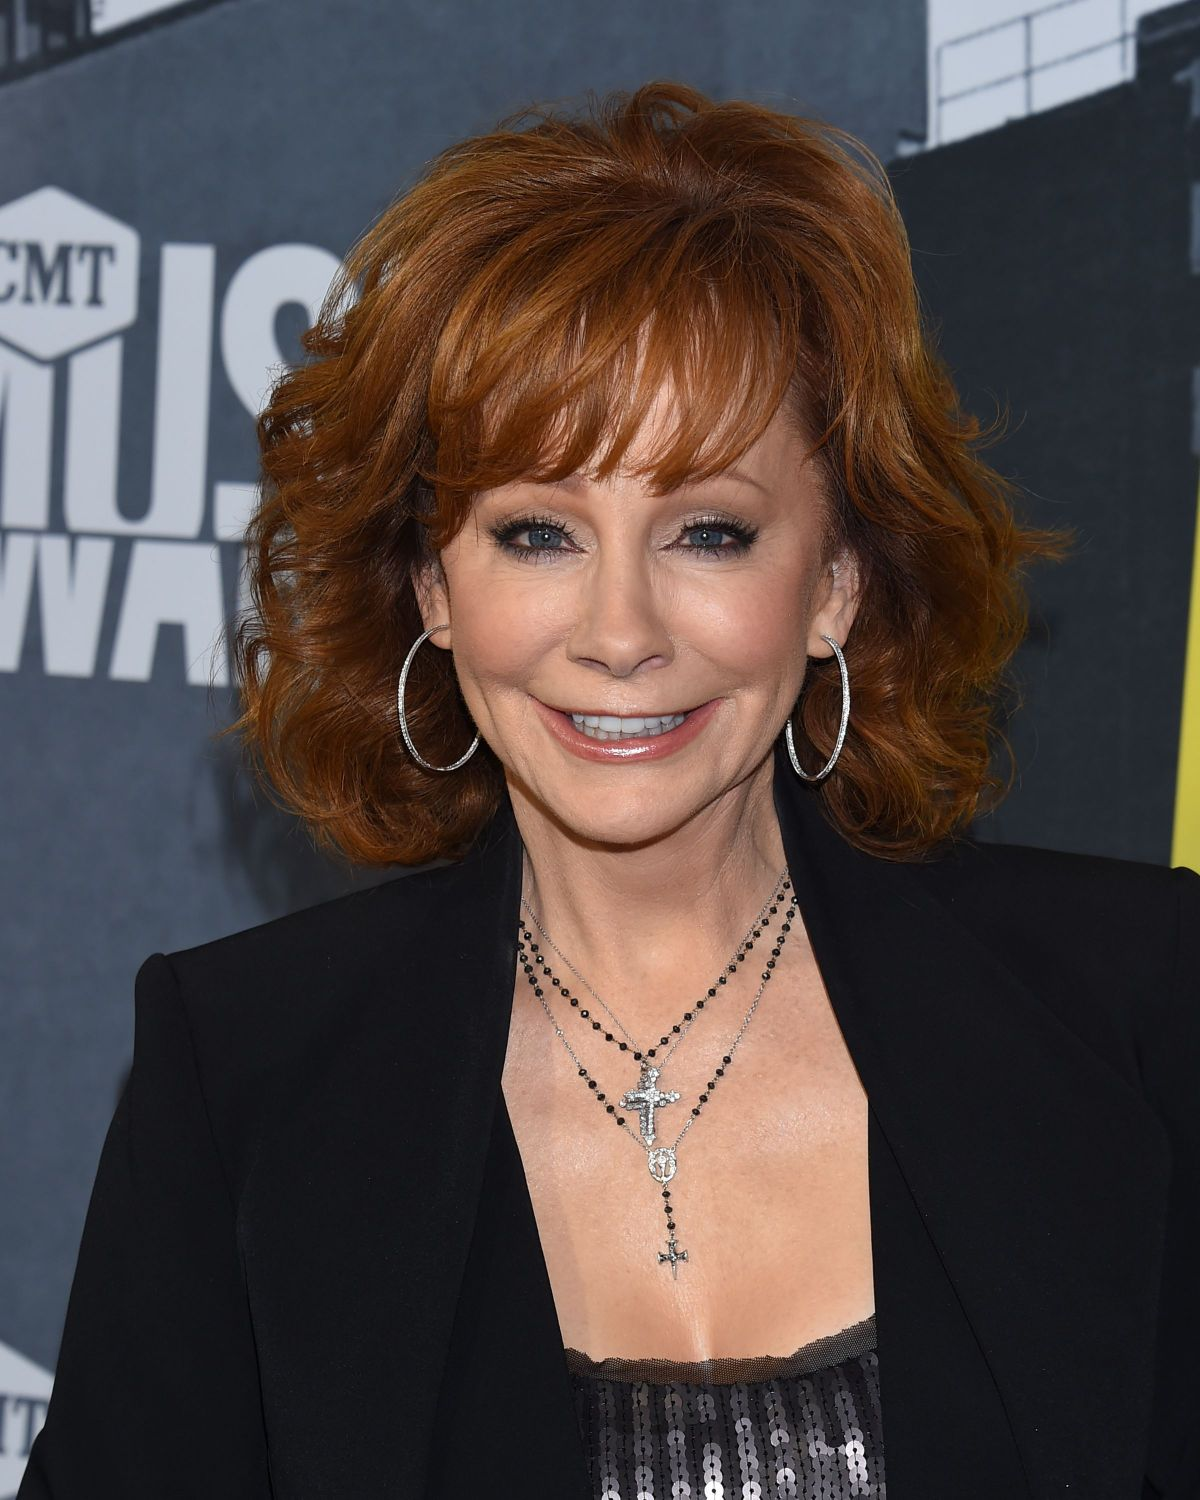 Reba McEntire finds herself family on Stronger Than the Truth